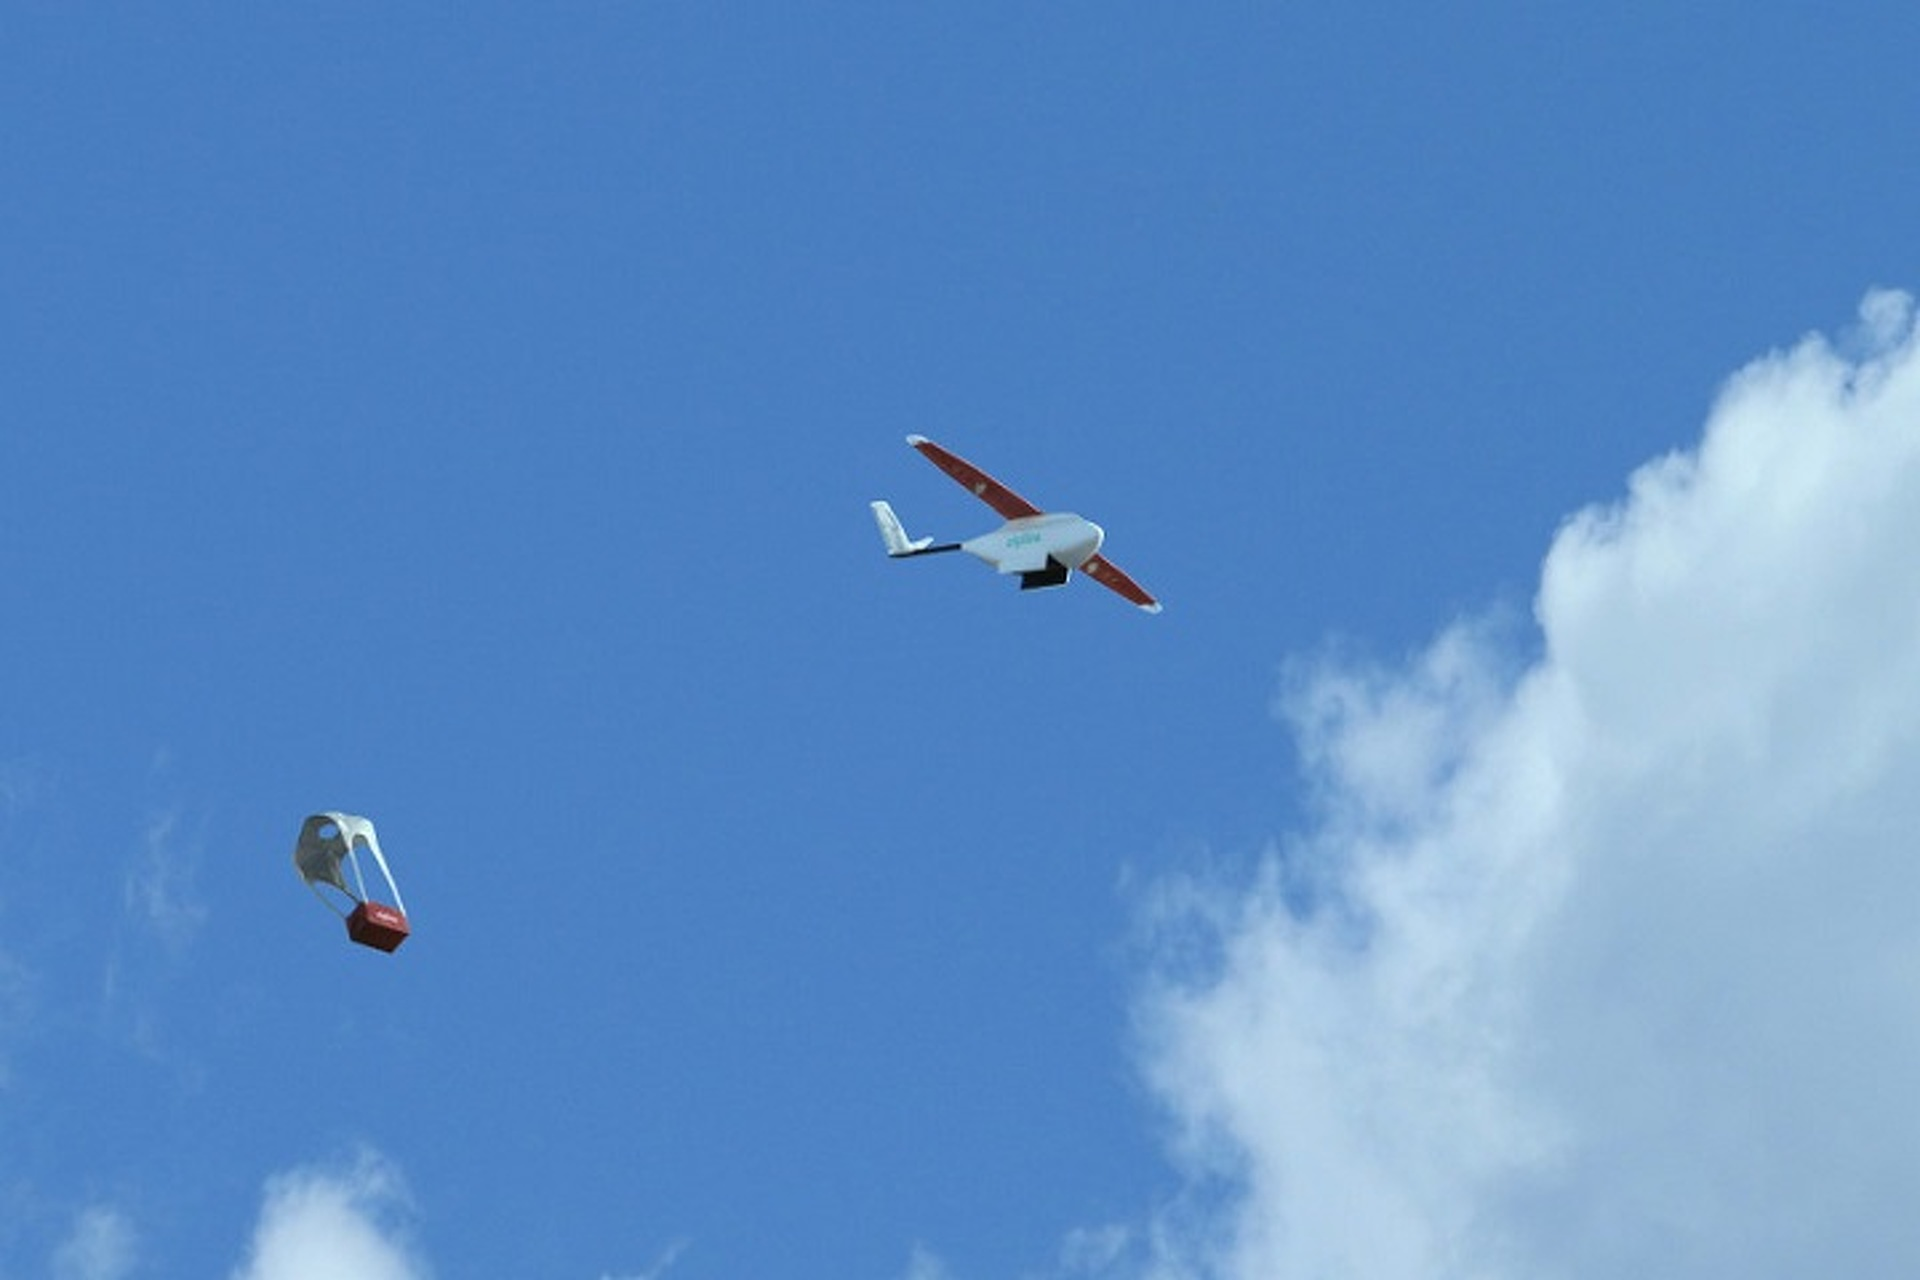 Drones Being Developed to Drop Medical Supplies in Africa